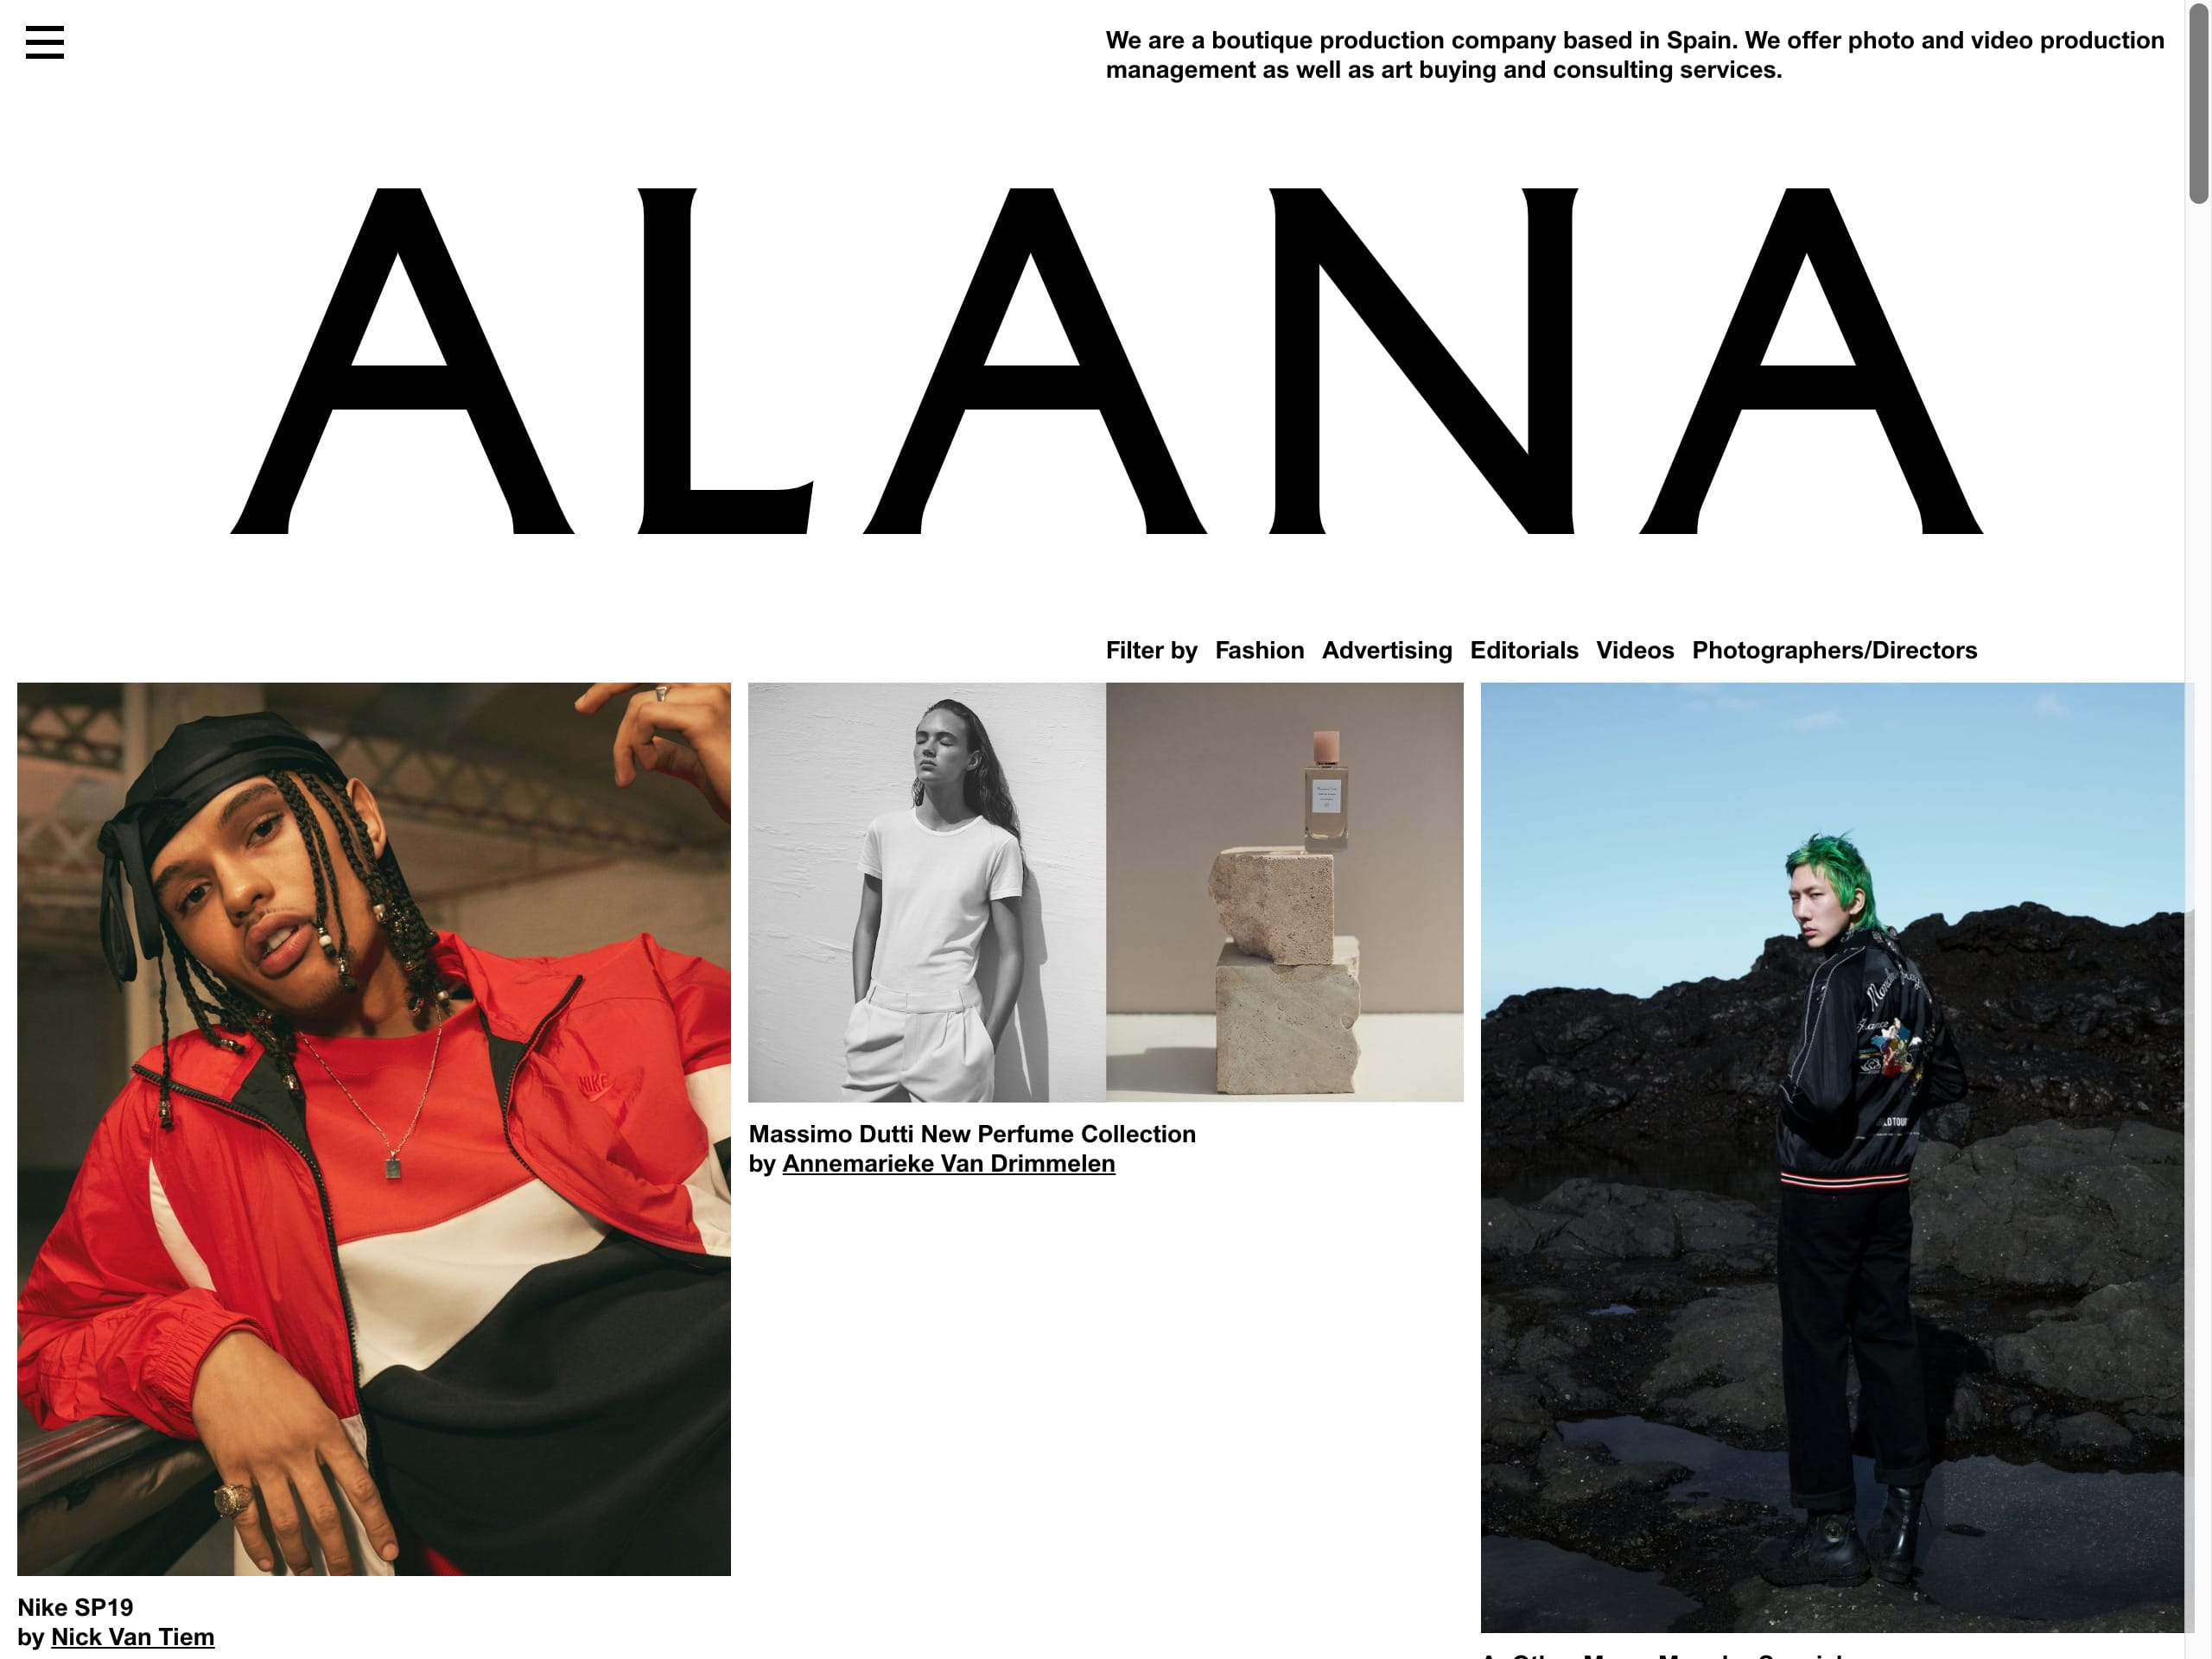 Alana   we are a boutique production company based in spain